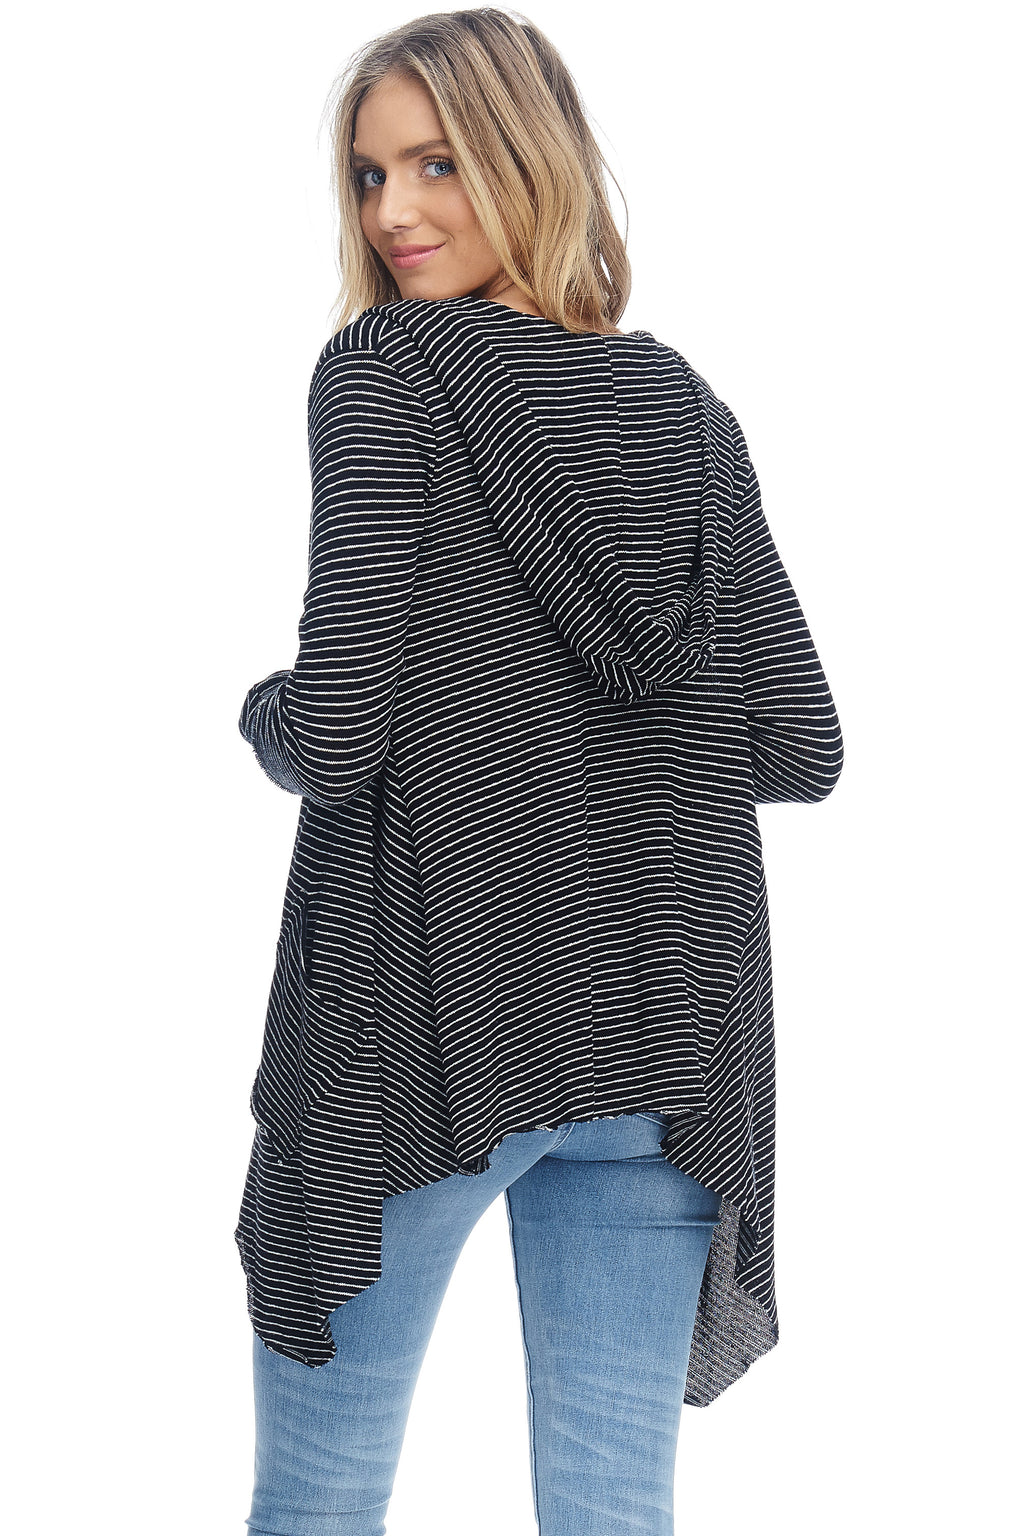 W18-007 Striped Hooded Cardigan